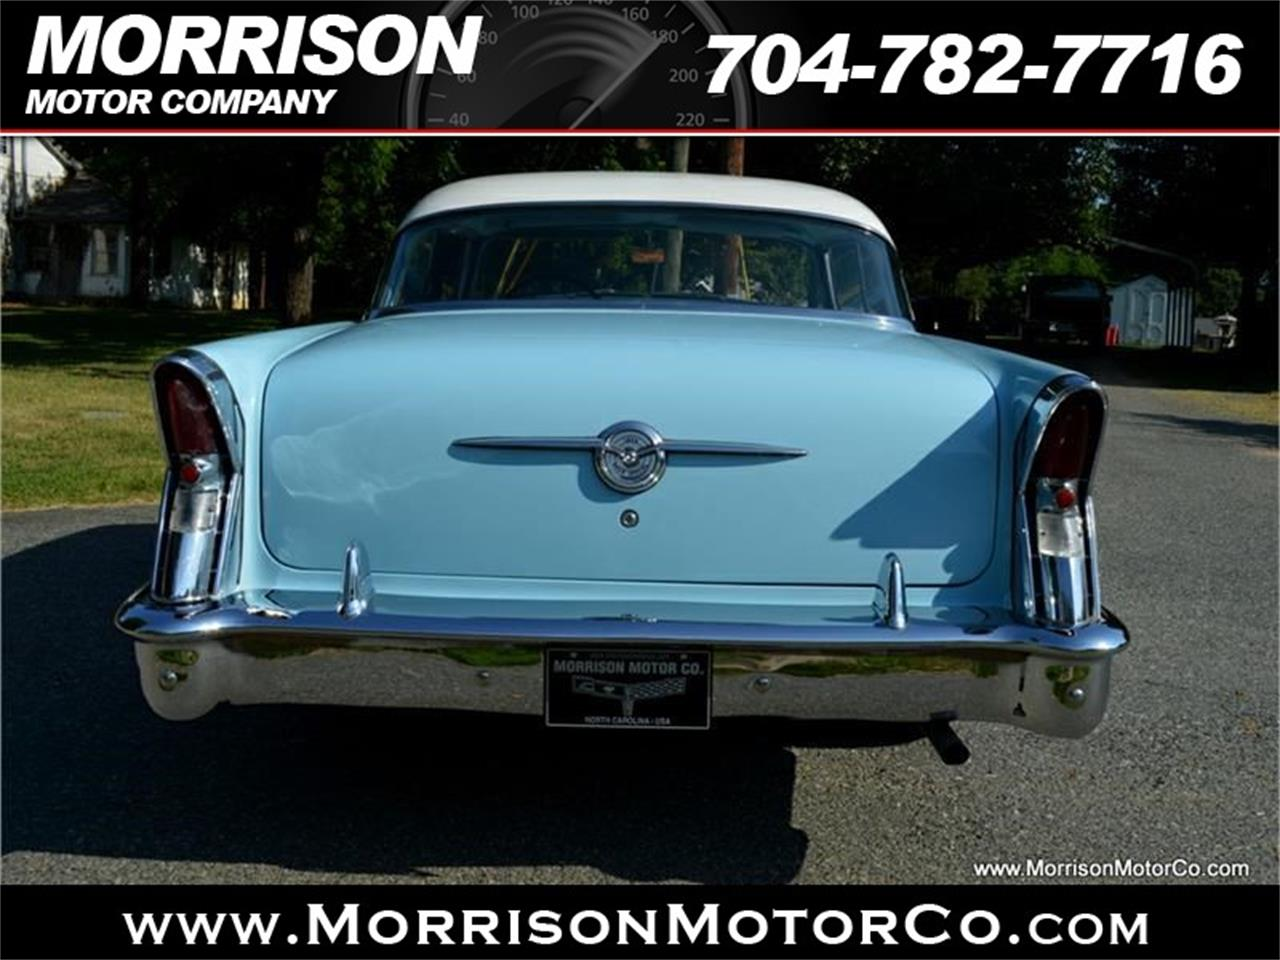 Large Picture of 1956 Buick Special Riviera Offered by Morrison Motor Company - M8P8